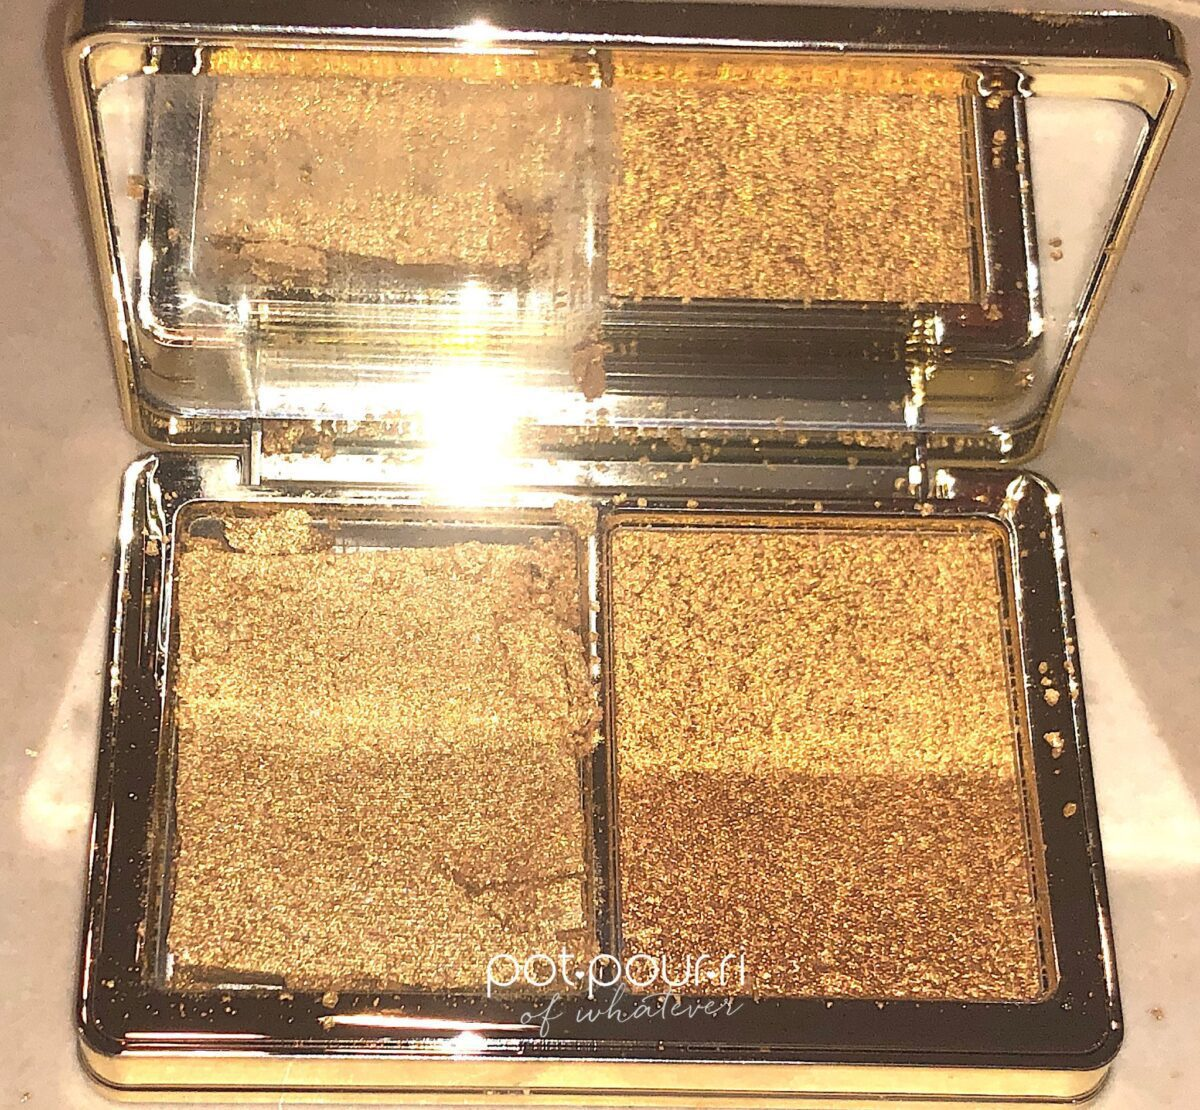 GLOW GOLD PALETTE HAS A LARGE MIRROR, THE DIAMOND POWDER CAME BROKEN